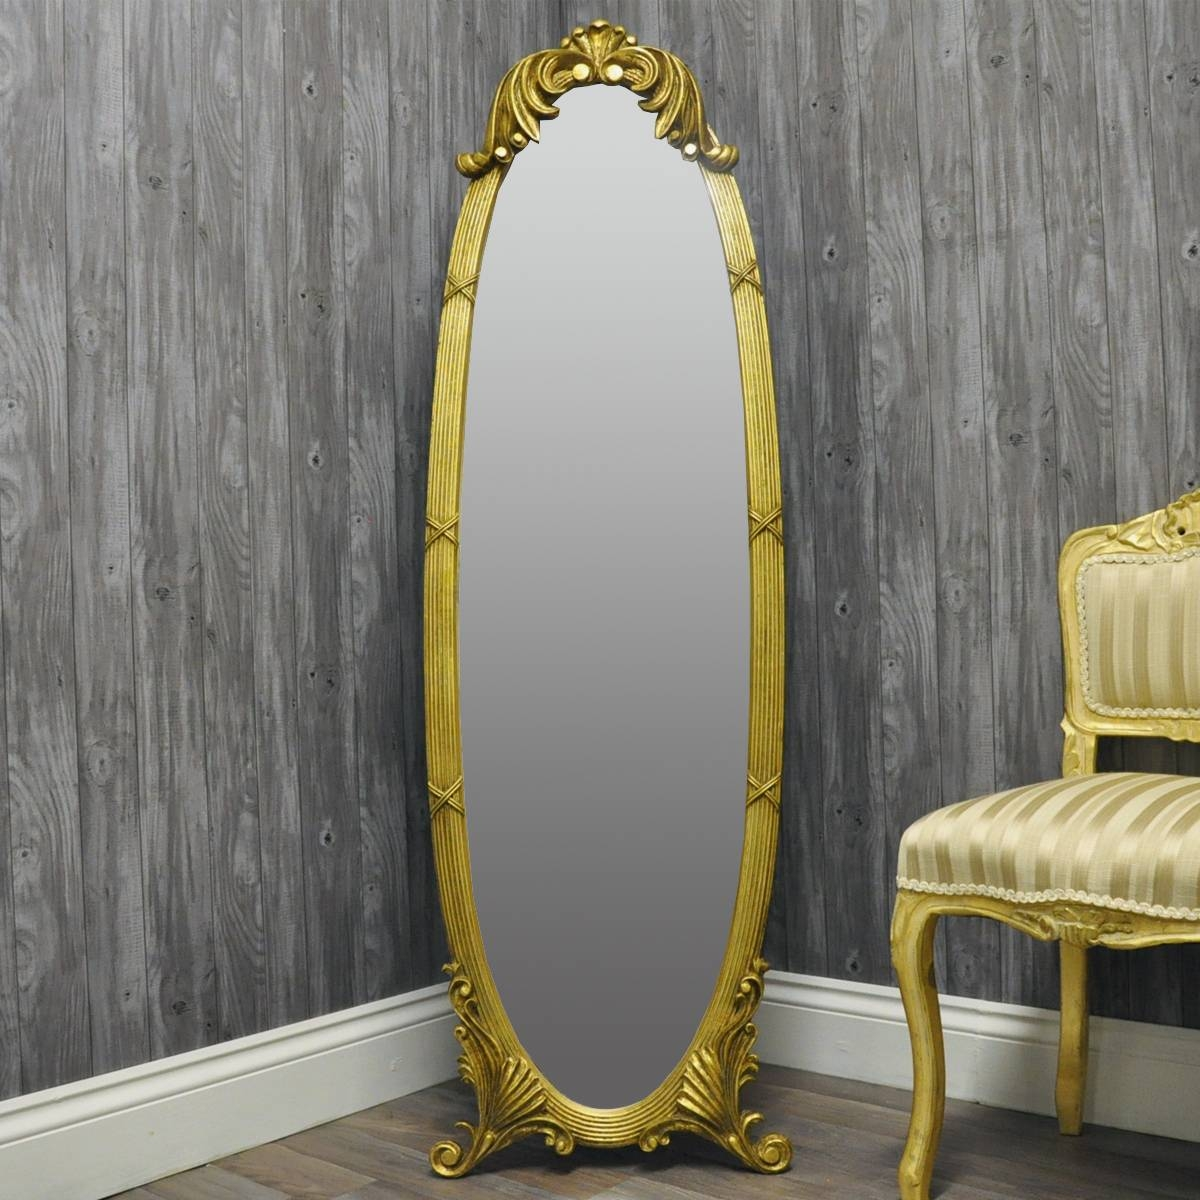 Choose From A Range Of Full Length Cheval Mirrors intended for Gold Full Length Mirrors (Image 4 of 15)